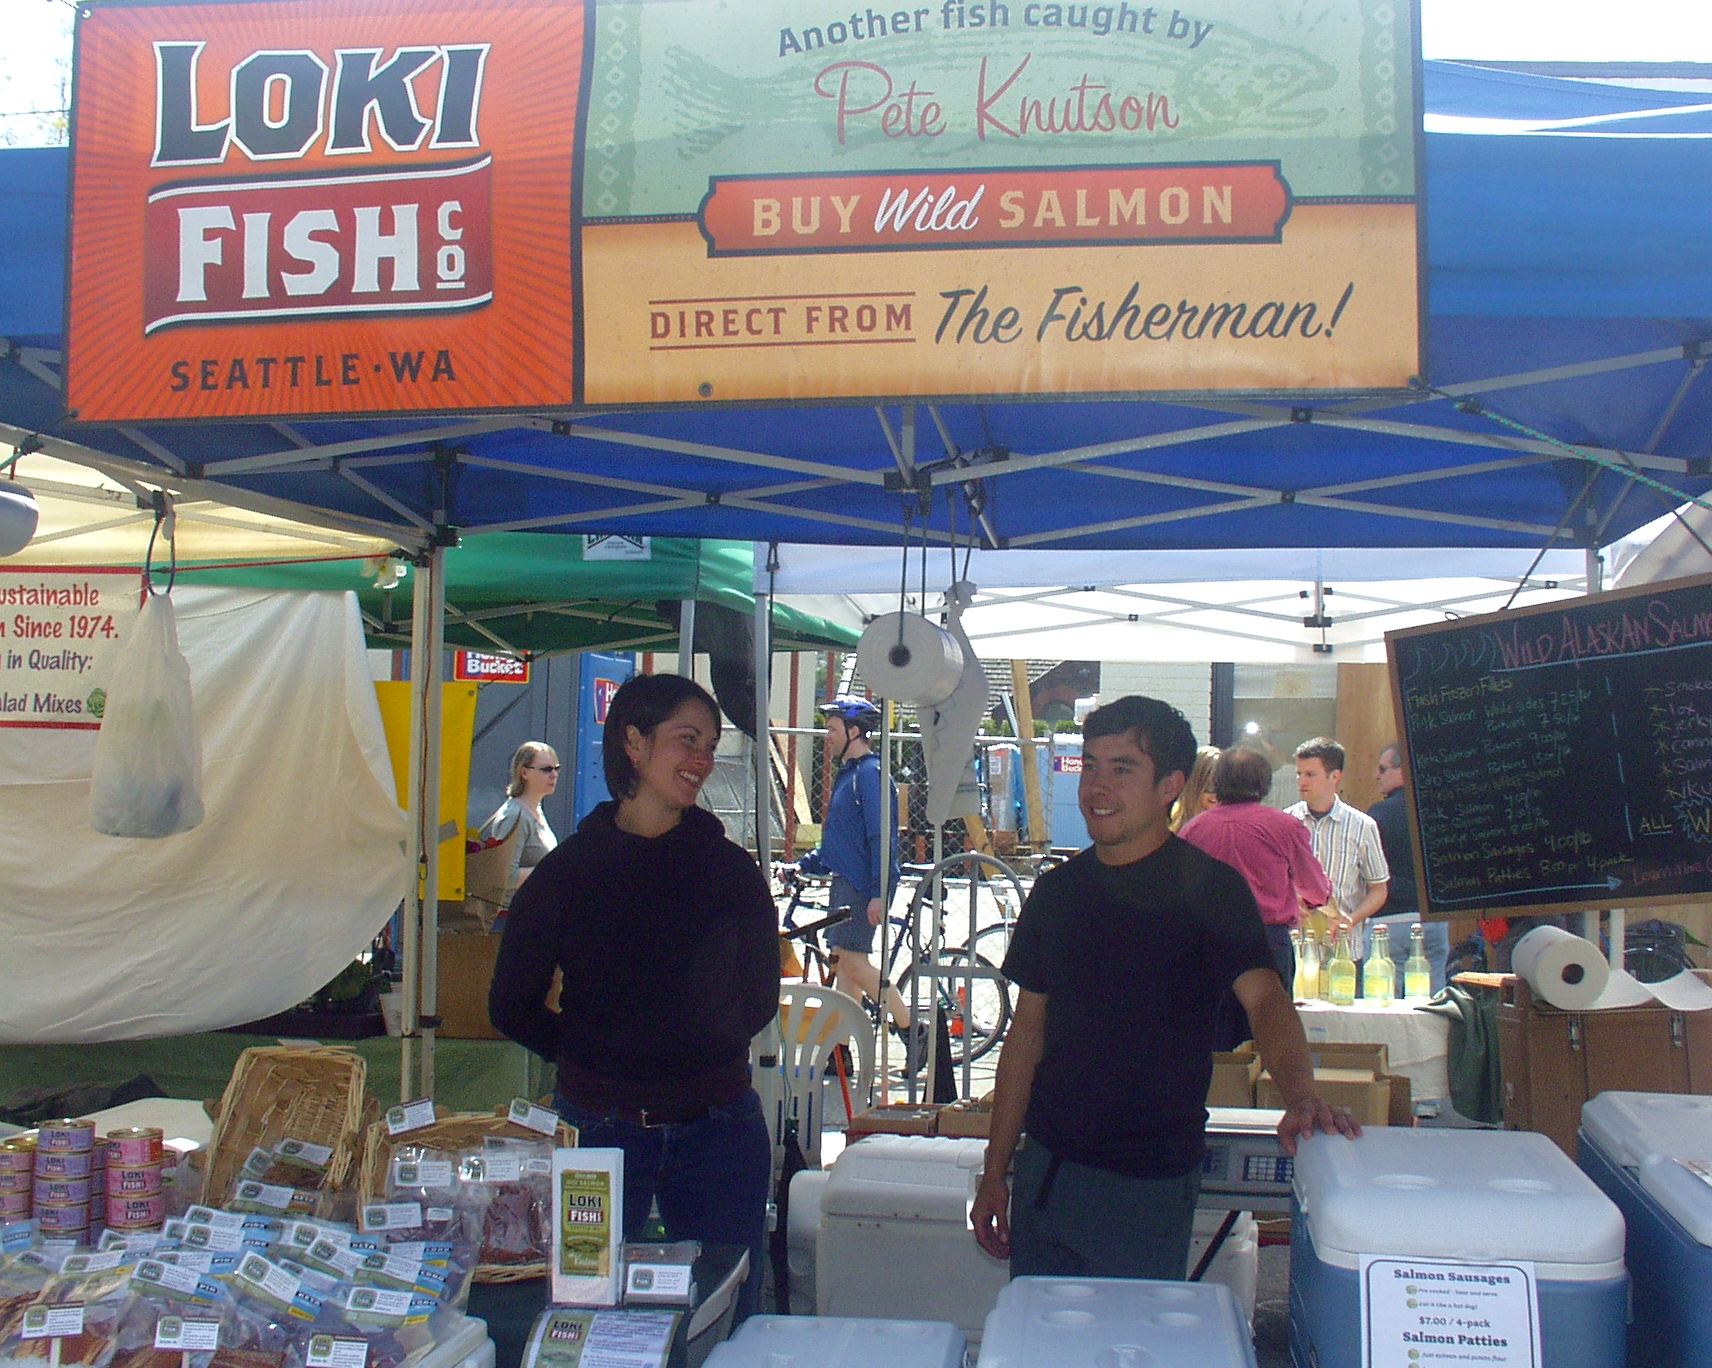 Loki Fish, which makes its home at Ballard's Fishermen's Terminal, has fresh salmon from their boats in Alaskan at the Market now. Photo copyright 2009 by Zachary D. Lyons.